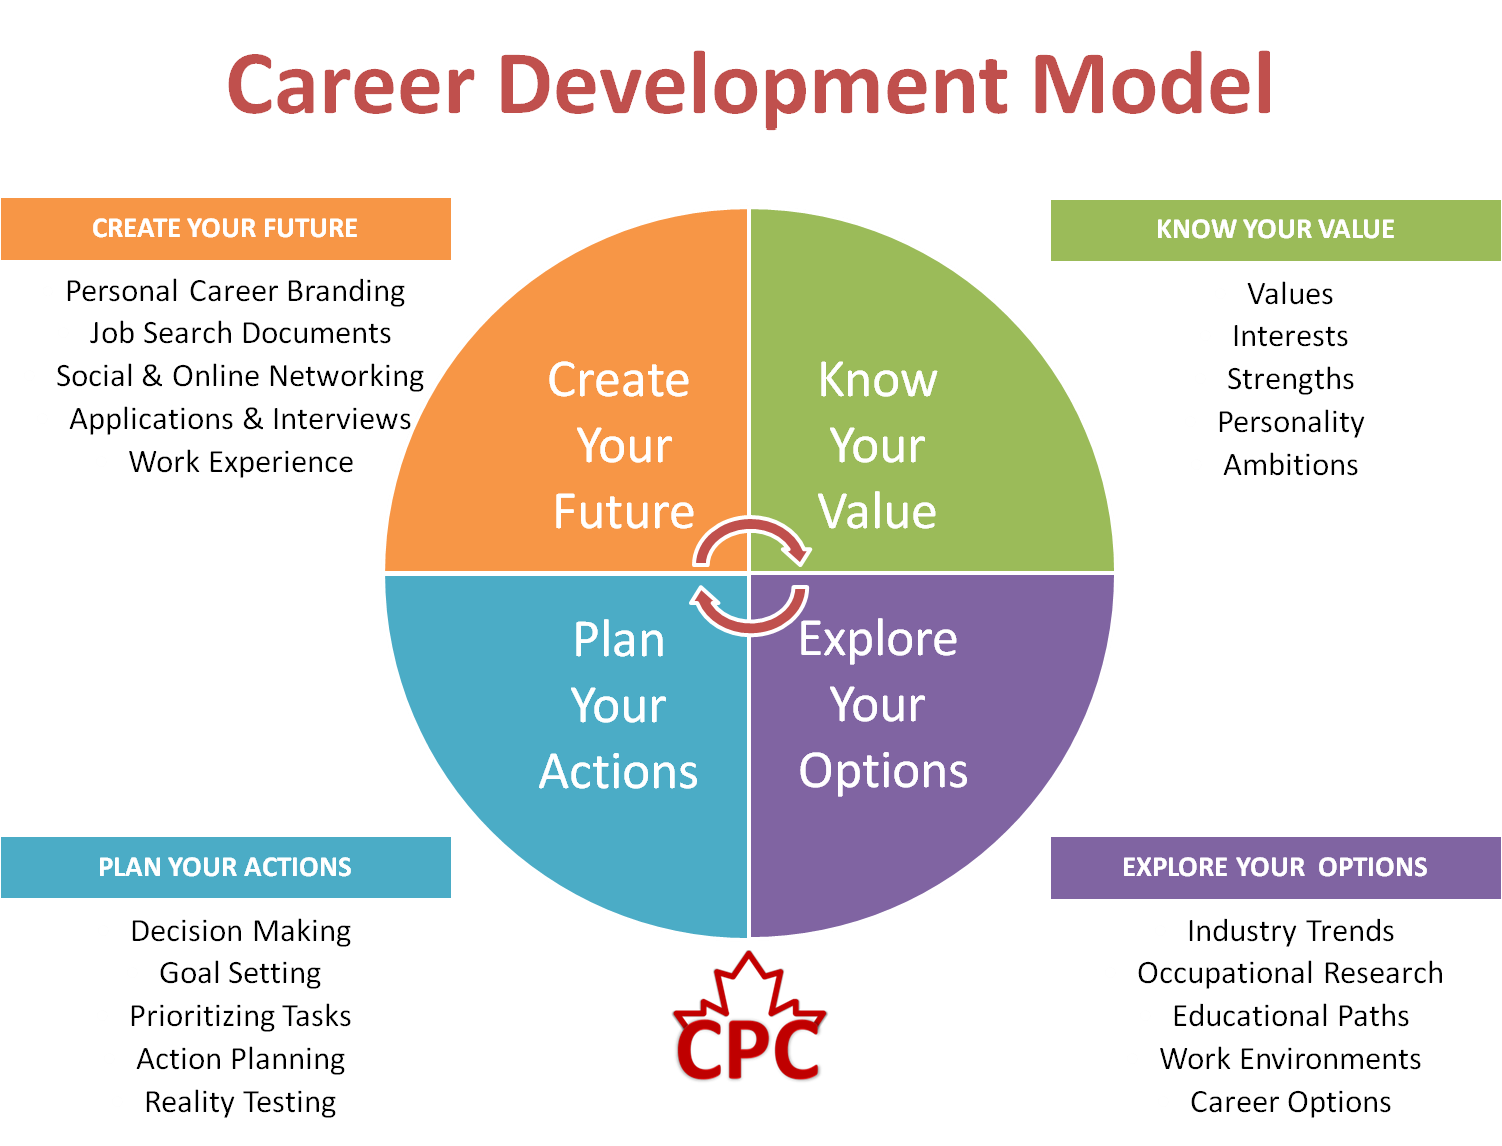 Law firms guide to selecting a cloud based vendor career career development model dodgen careerguidance dodgenco malvernweather